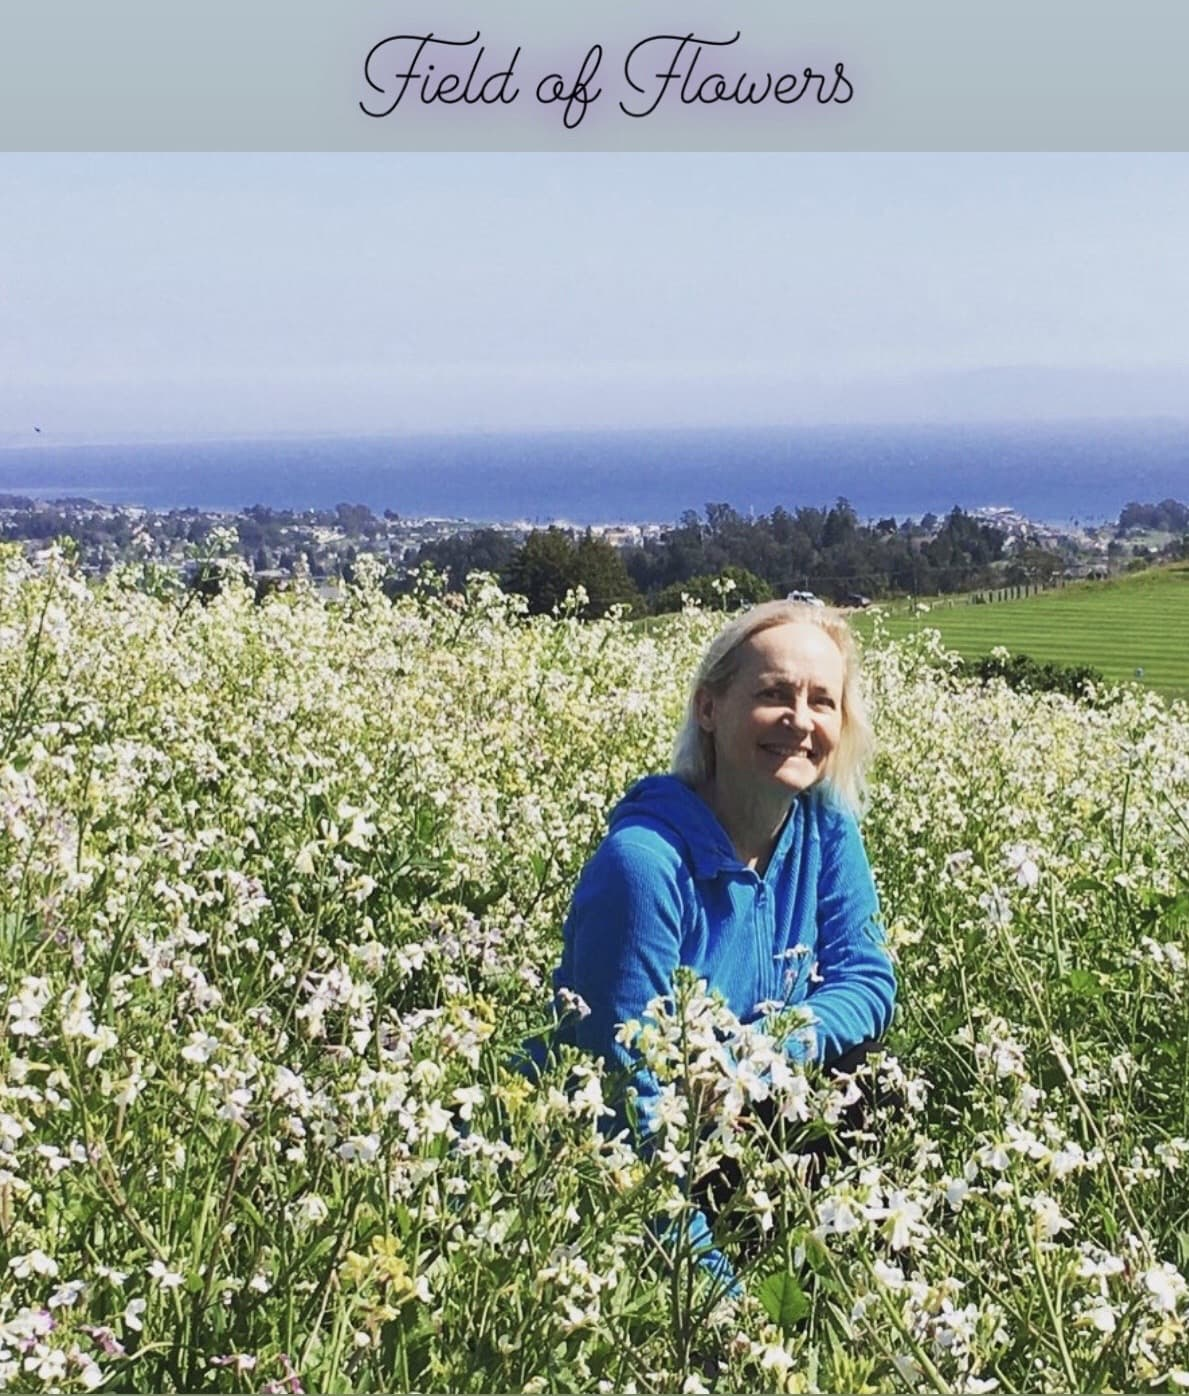 The author in a field of flowers.